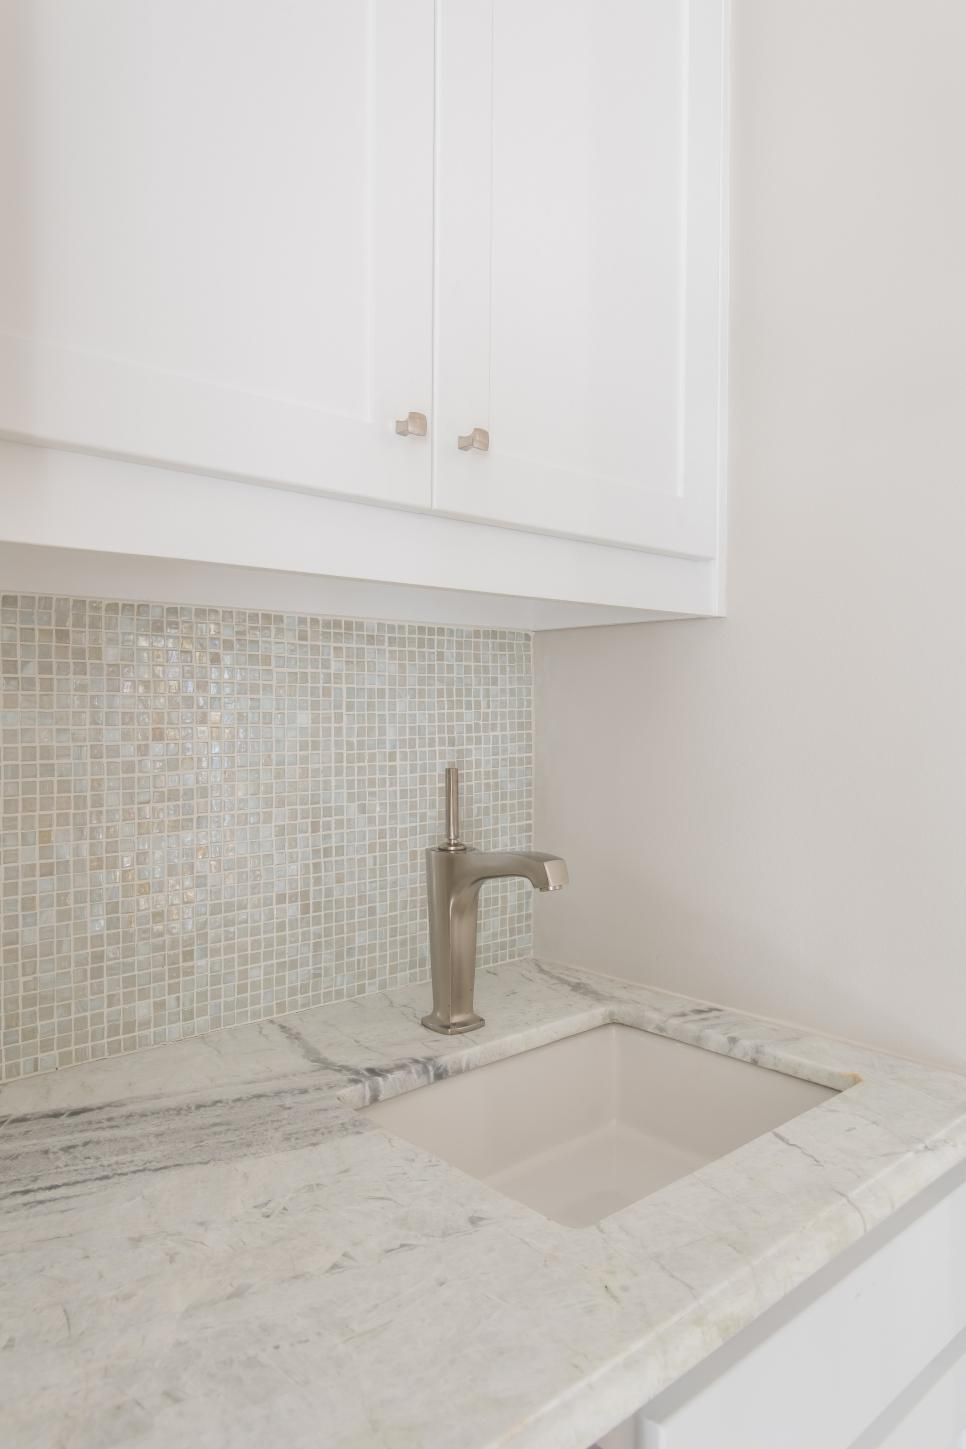 An Opalescent Gl Tile Backsplash And Elegant Quartzite Counter Blend Beautifully With The Surrounding E In